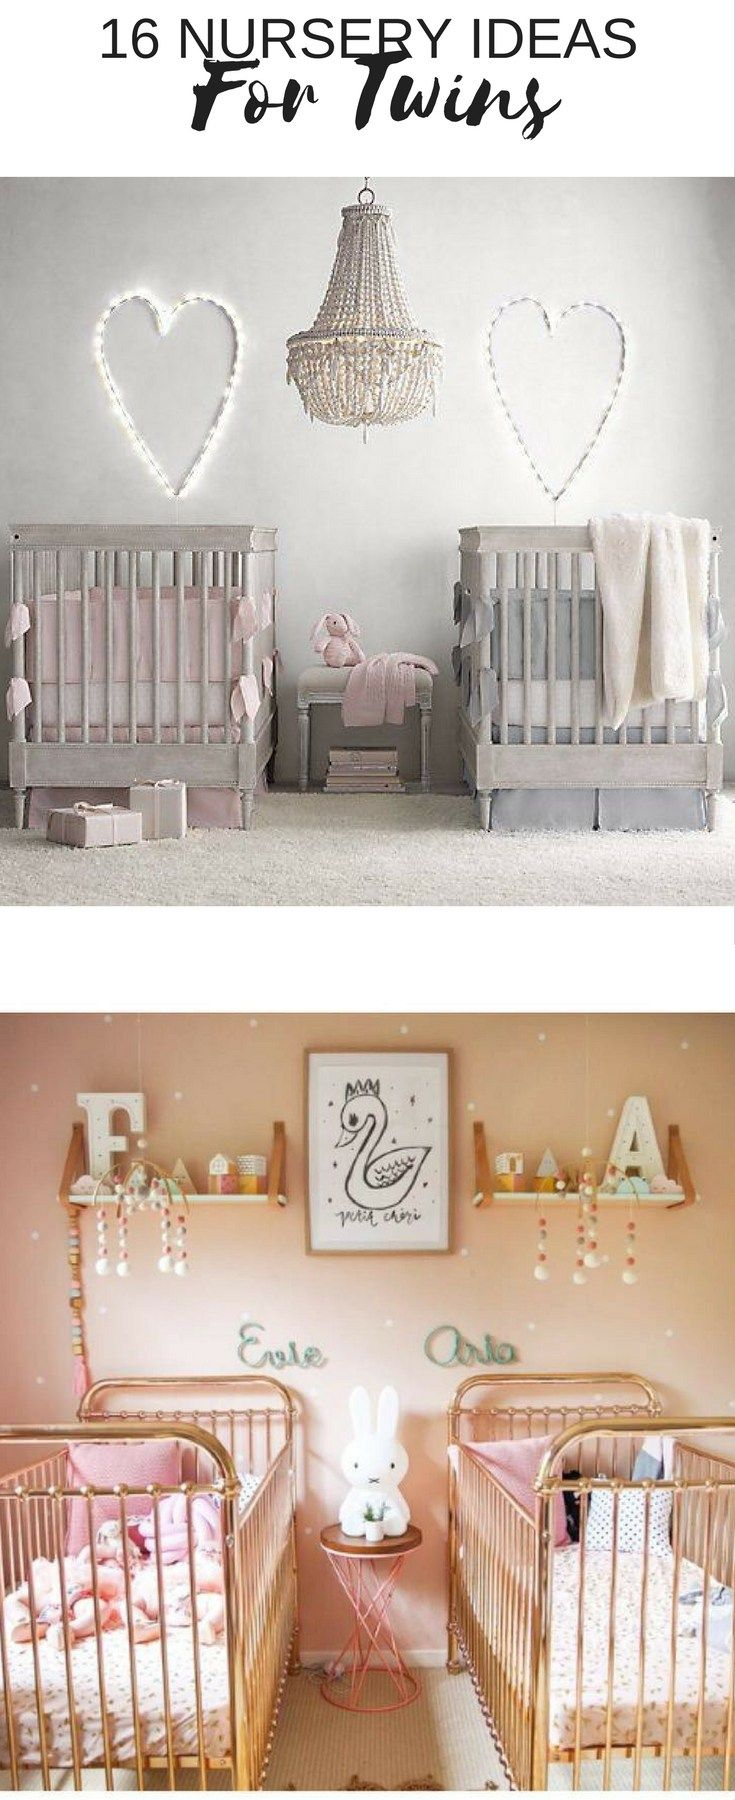 17 Gorgeous Twin Nursery Ideas Baby Twins